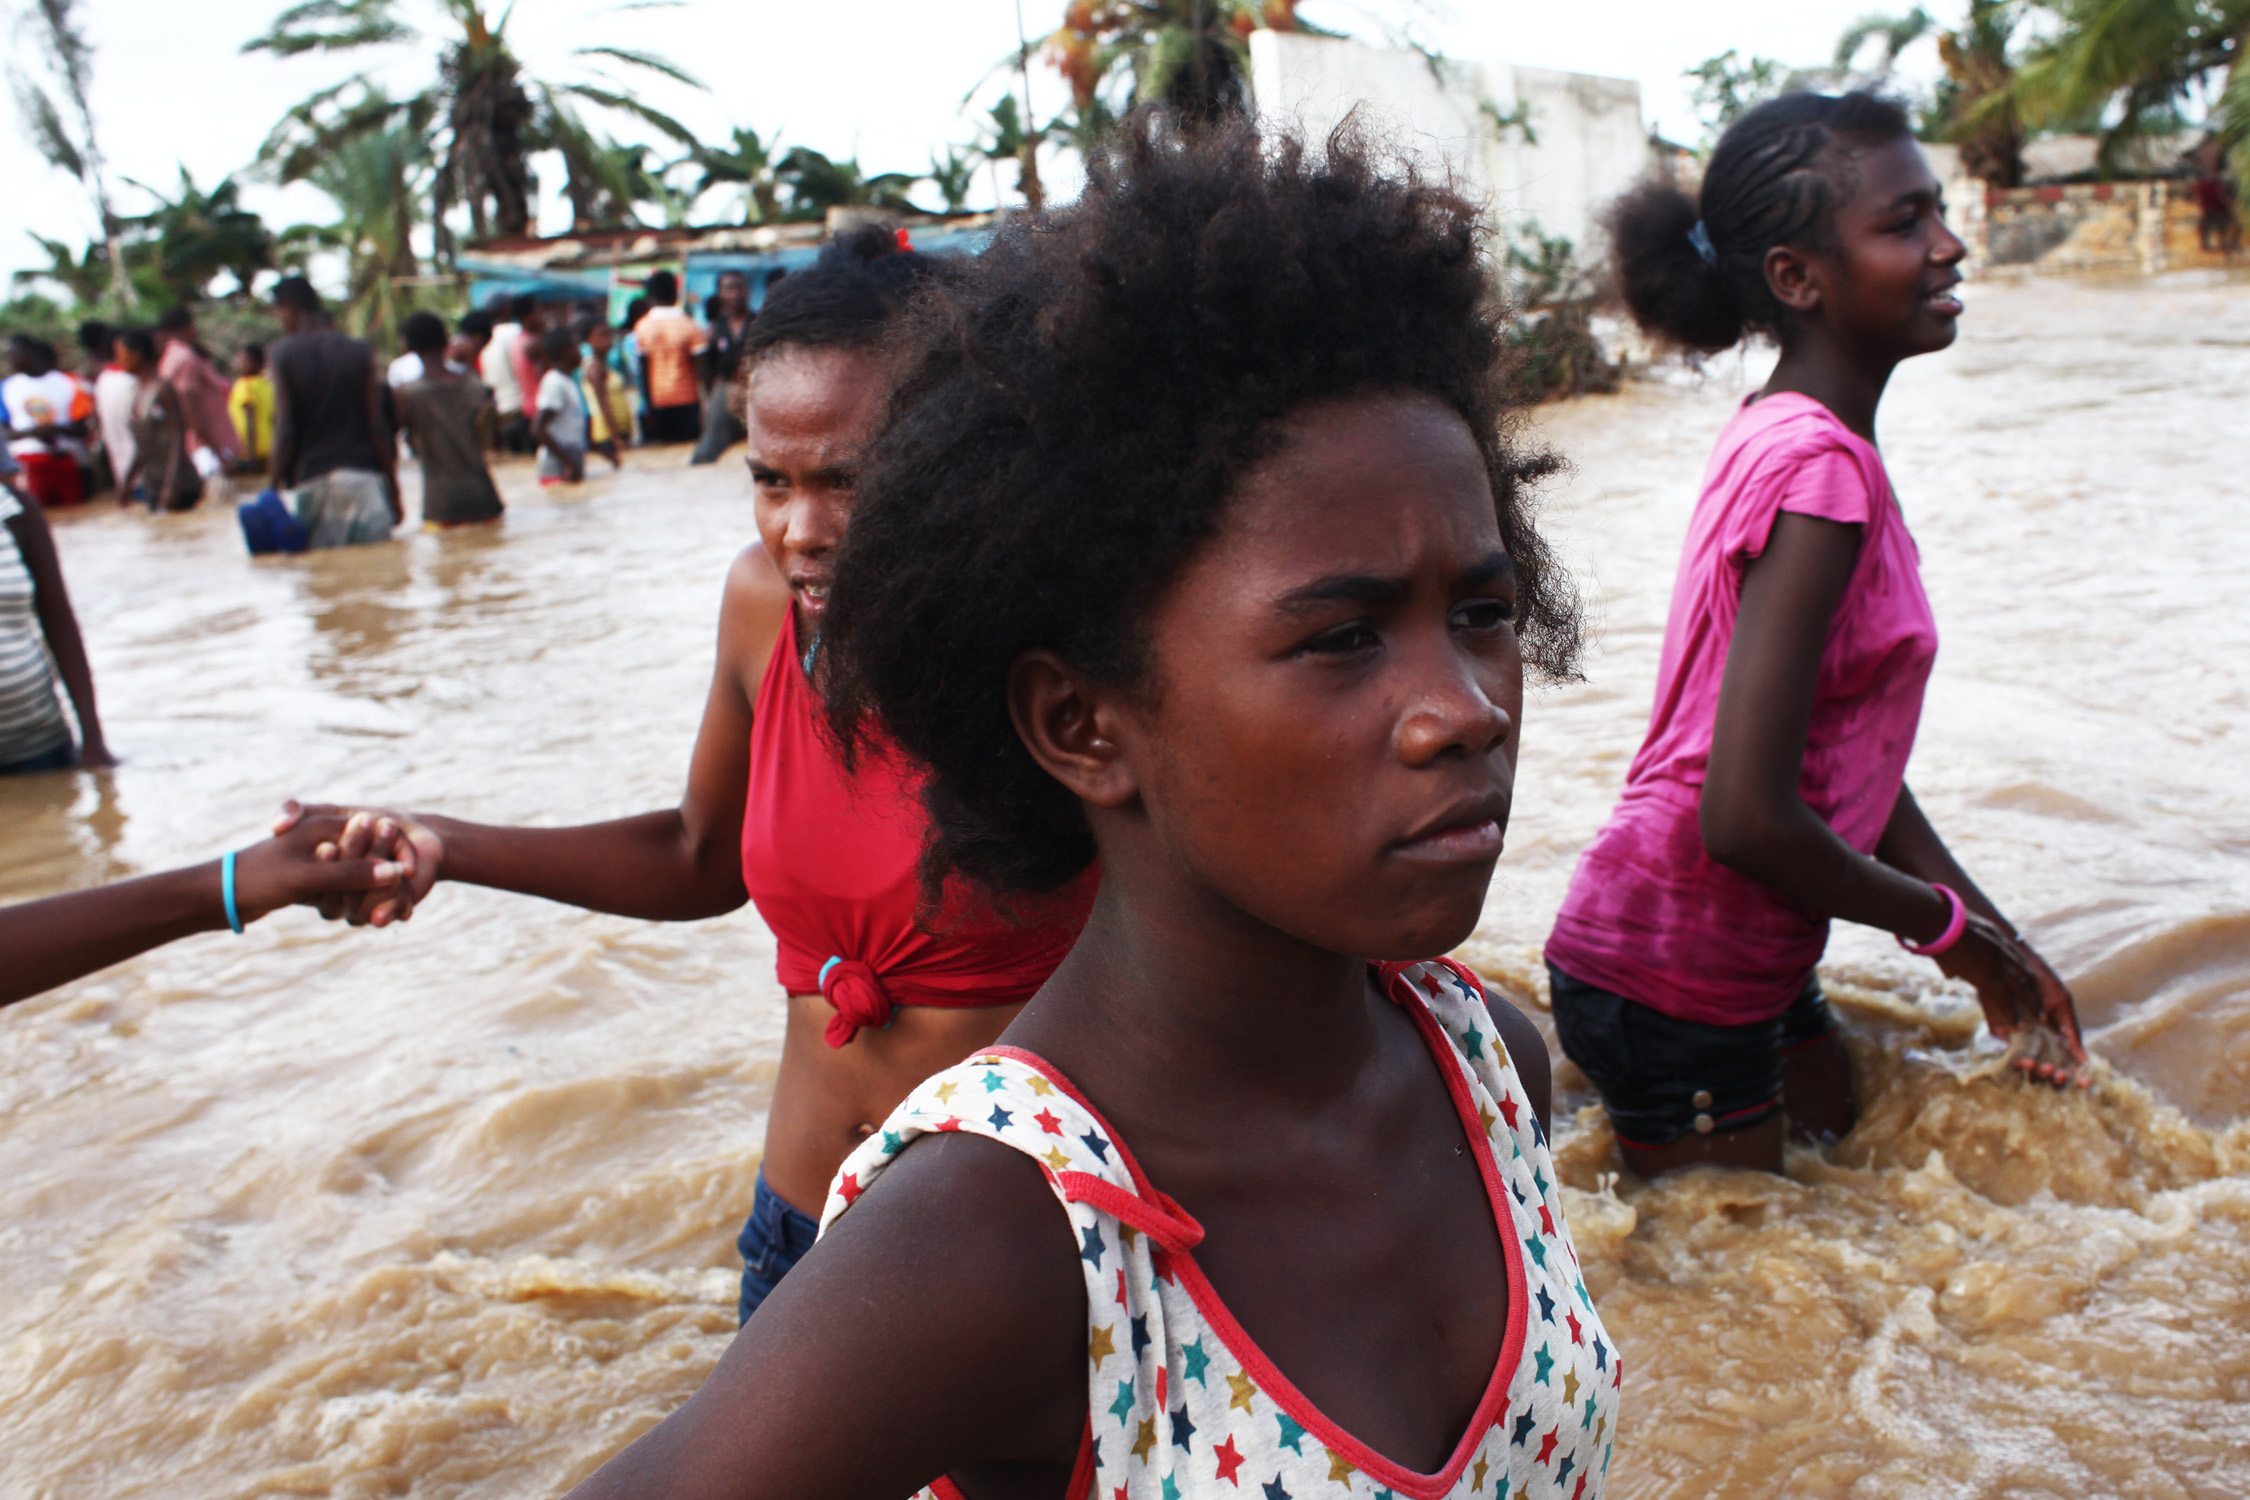 Tropical Cyclone Haruna brought widespread flooding to Toliary District in south-west Madagascar following the breaking of a dyke in the area